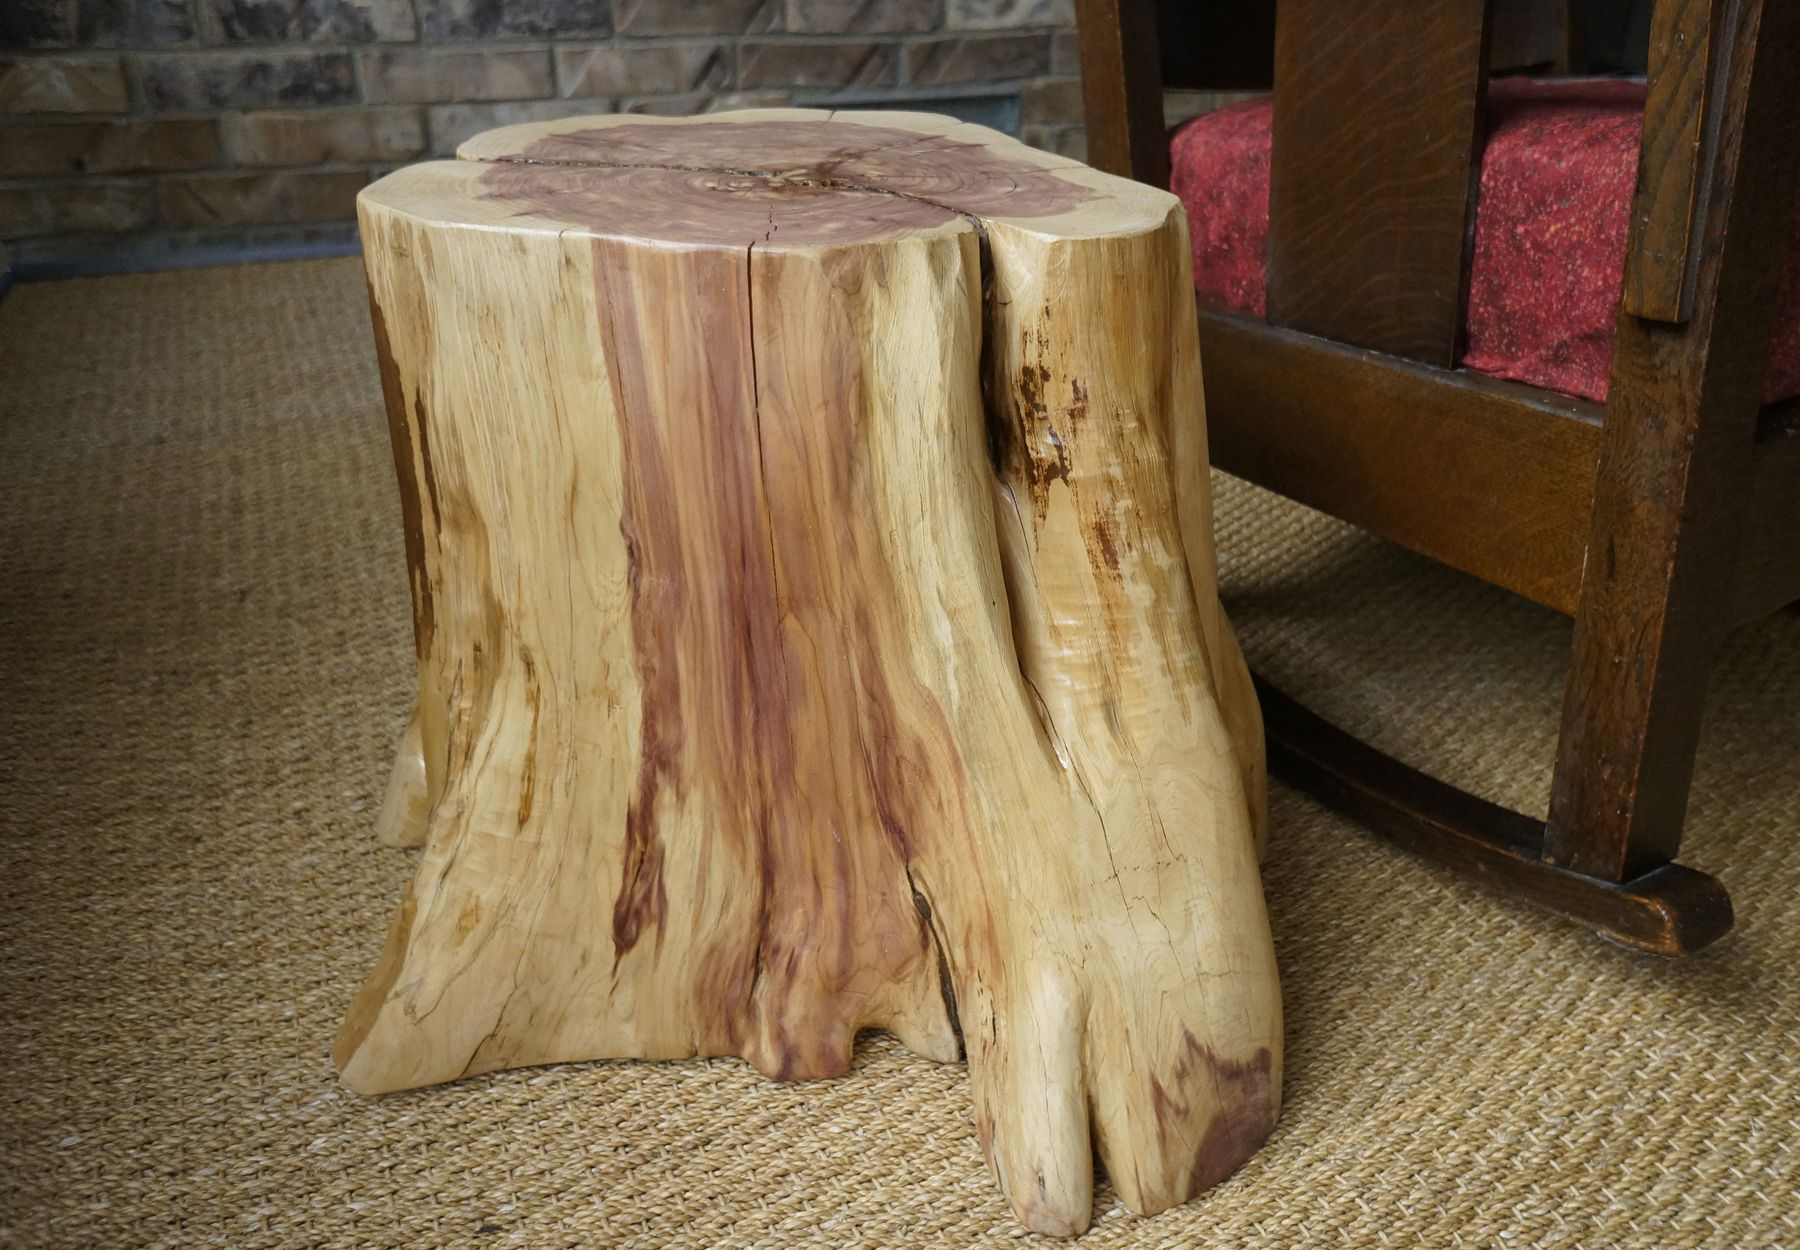 Best 25+ Tree stump table ideas on Pinterest | Stump table ...